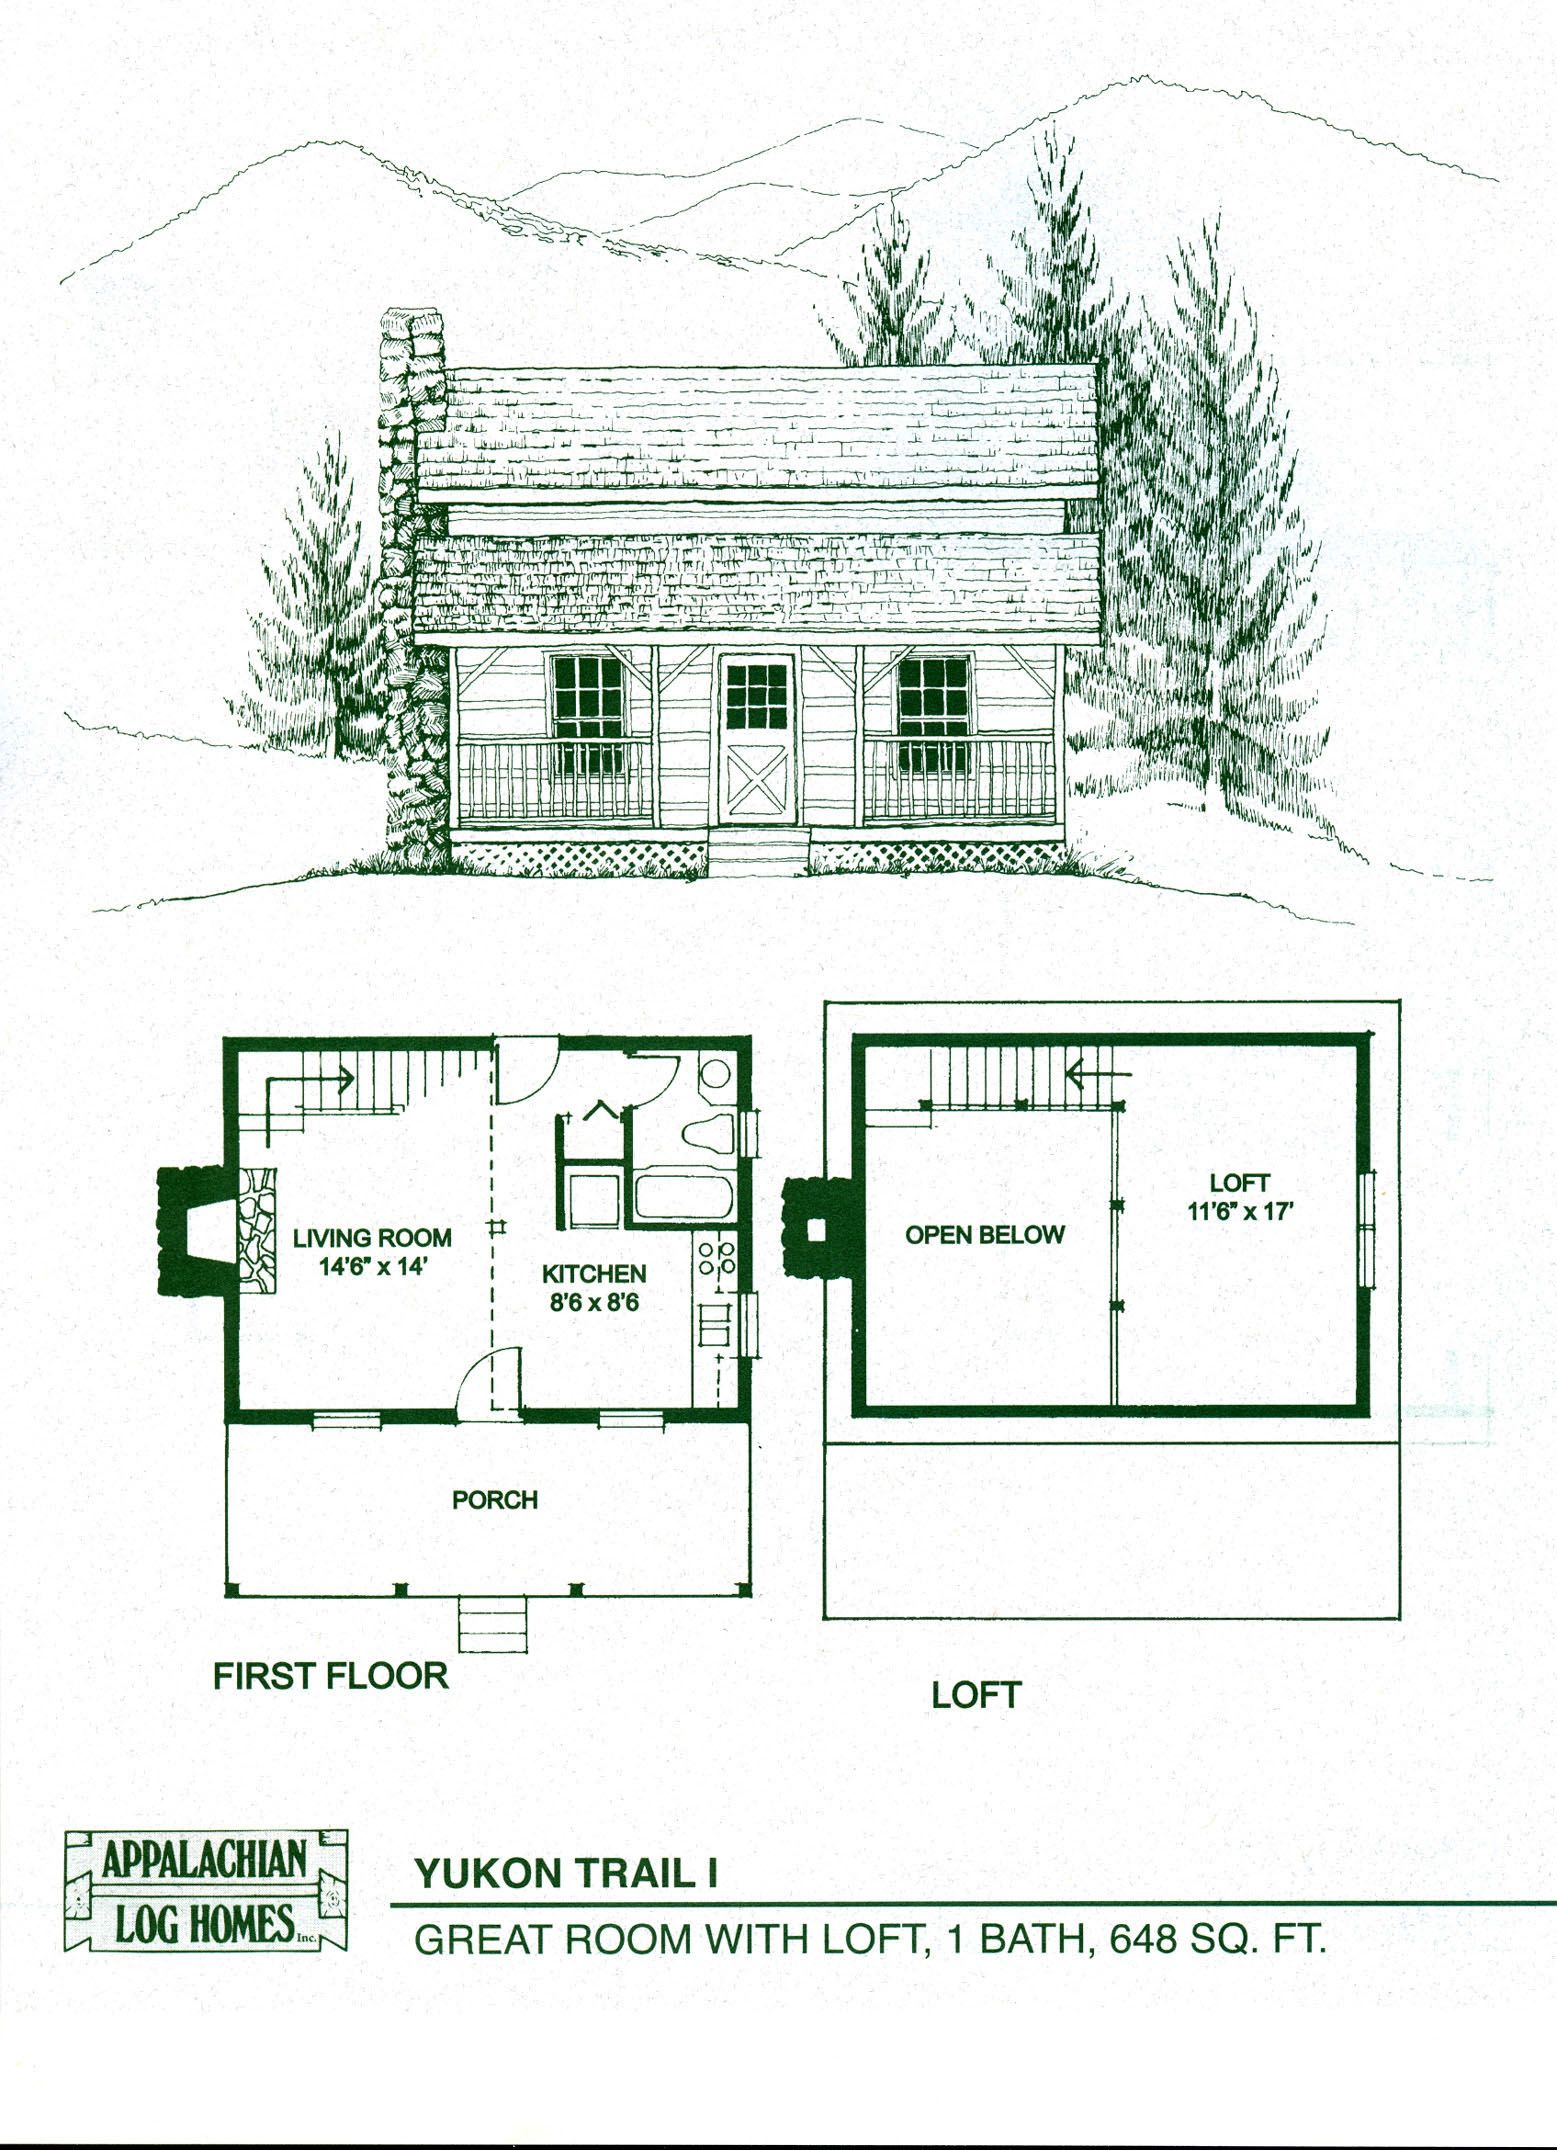 Log home floor plans log cabin kits appalachian log homes crafts and sewing ideas Log home design ideas planning guide